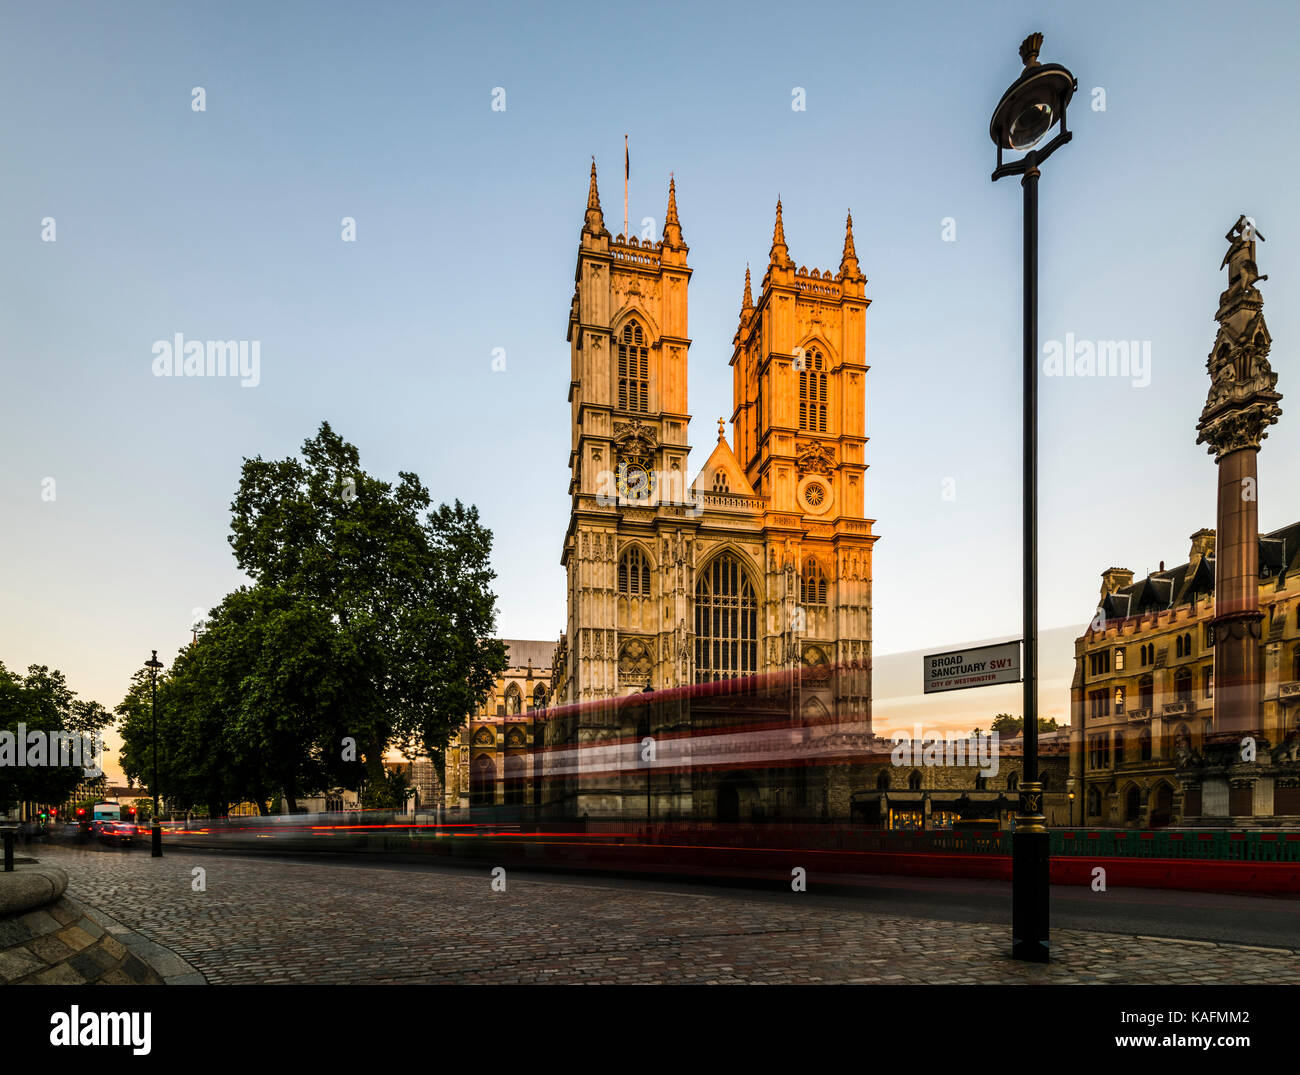 Red London buses in front of Westminster Abbey at dusk, London, UK - Stock Image